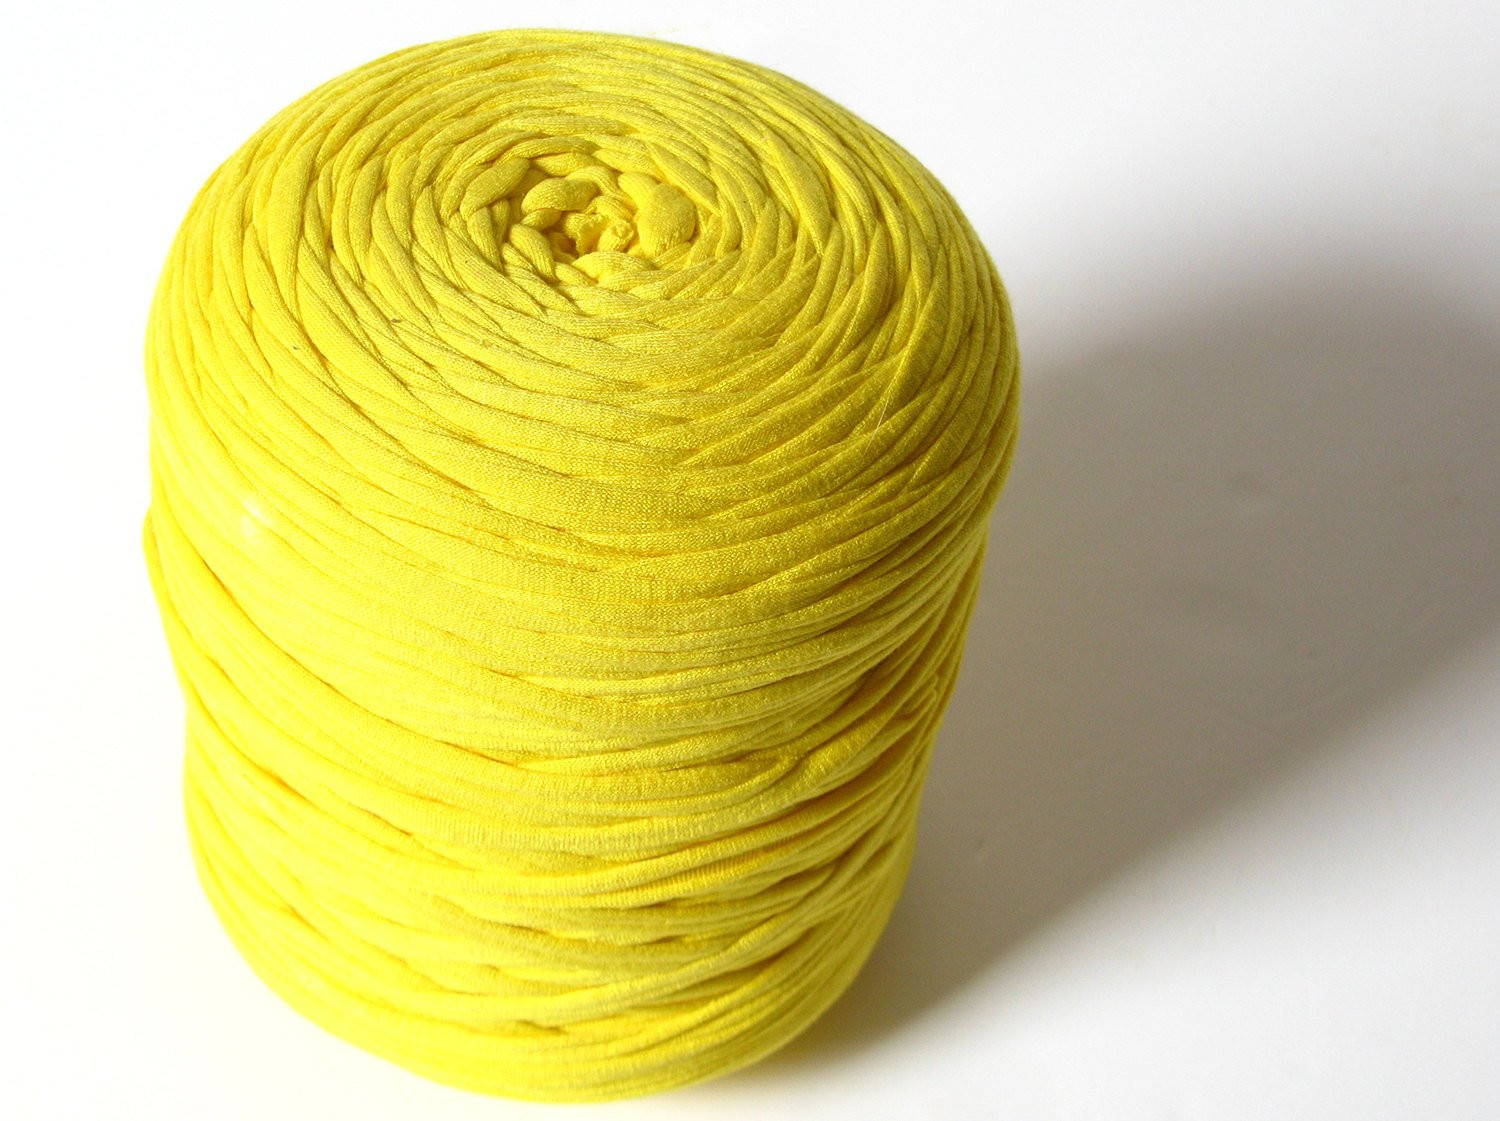 Chunky Cotton Yarn New T Shirt Yarn Chunky Bulky Thick Cotton Yarn Yellow Of Chunky Cotton Yarn Beautiful Cherry Red Chunky Tape Yarn for Knitting Weaving and